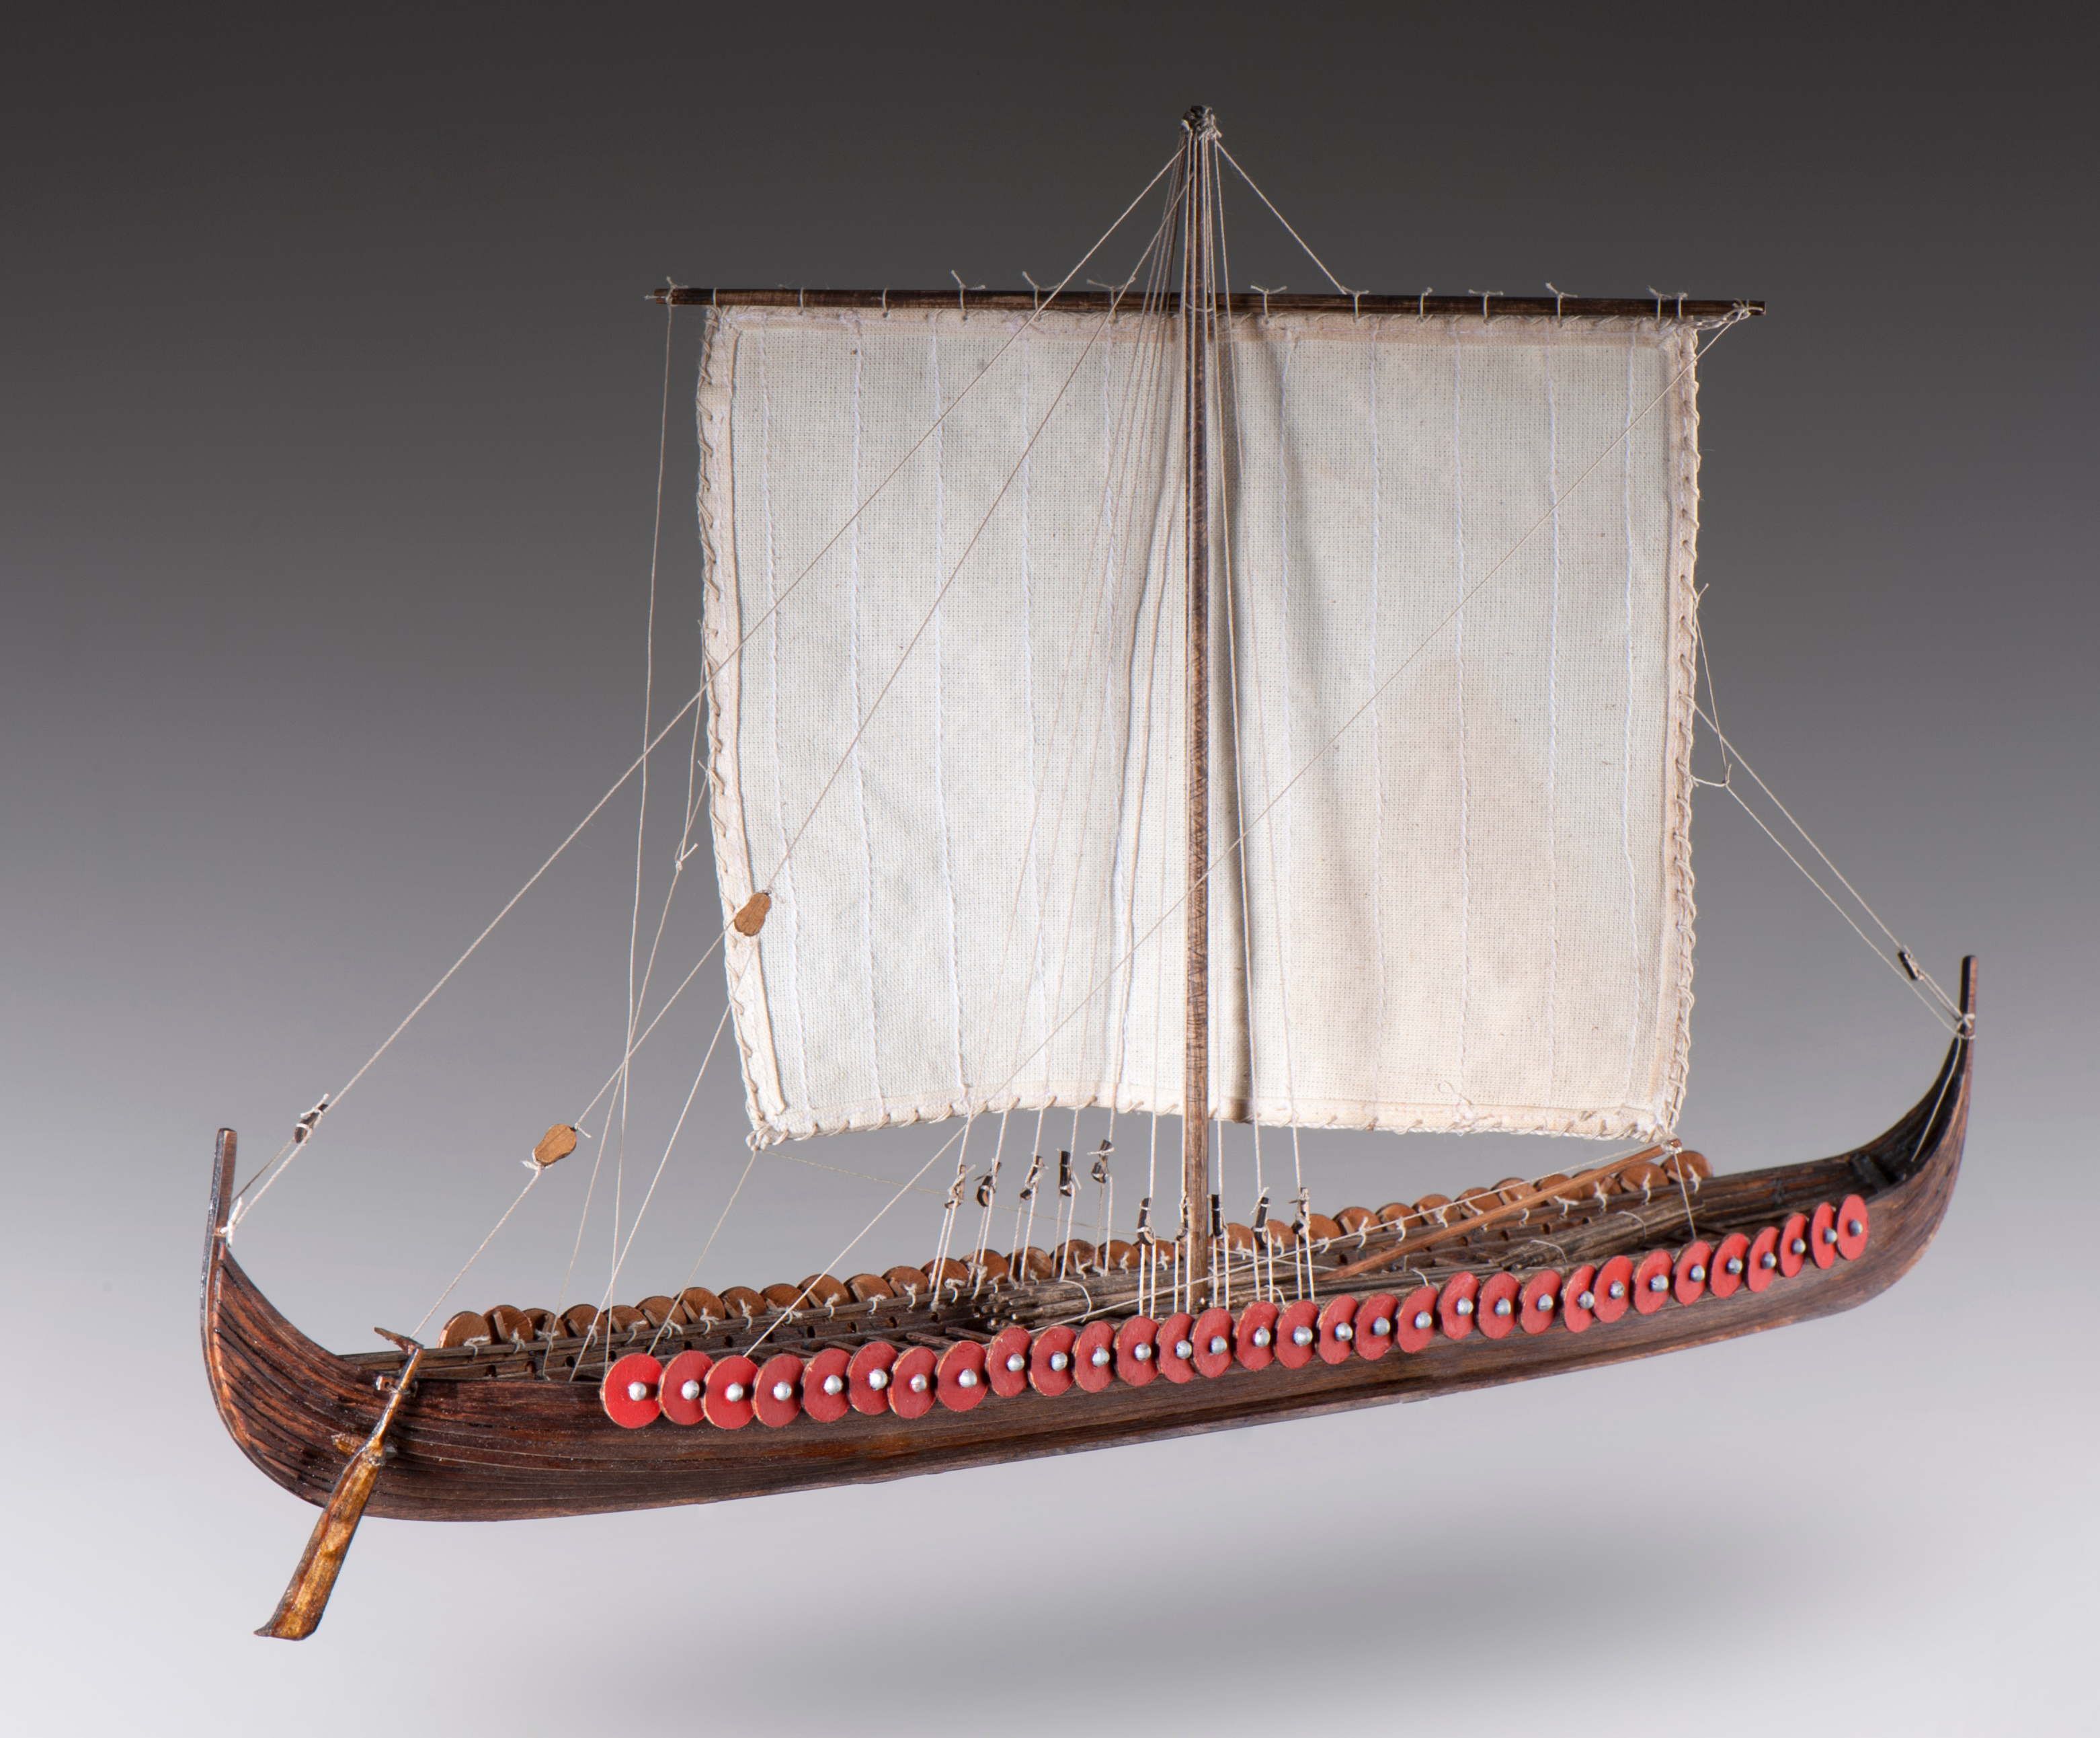 Dusek D014 Viking Longship Plank-On-Frame Wood Ship Model Kit - 1:72 Scale - 390mmLong